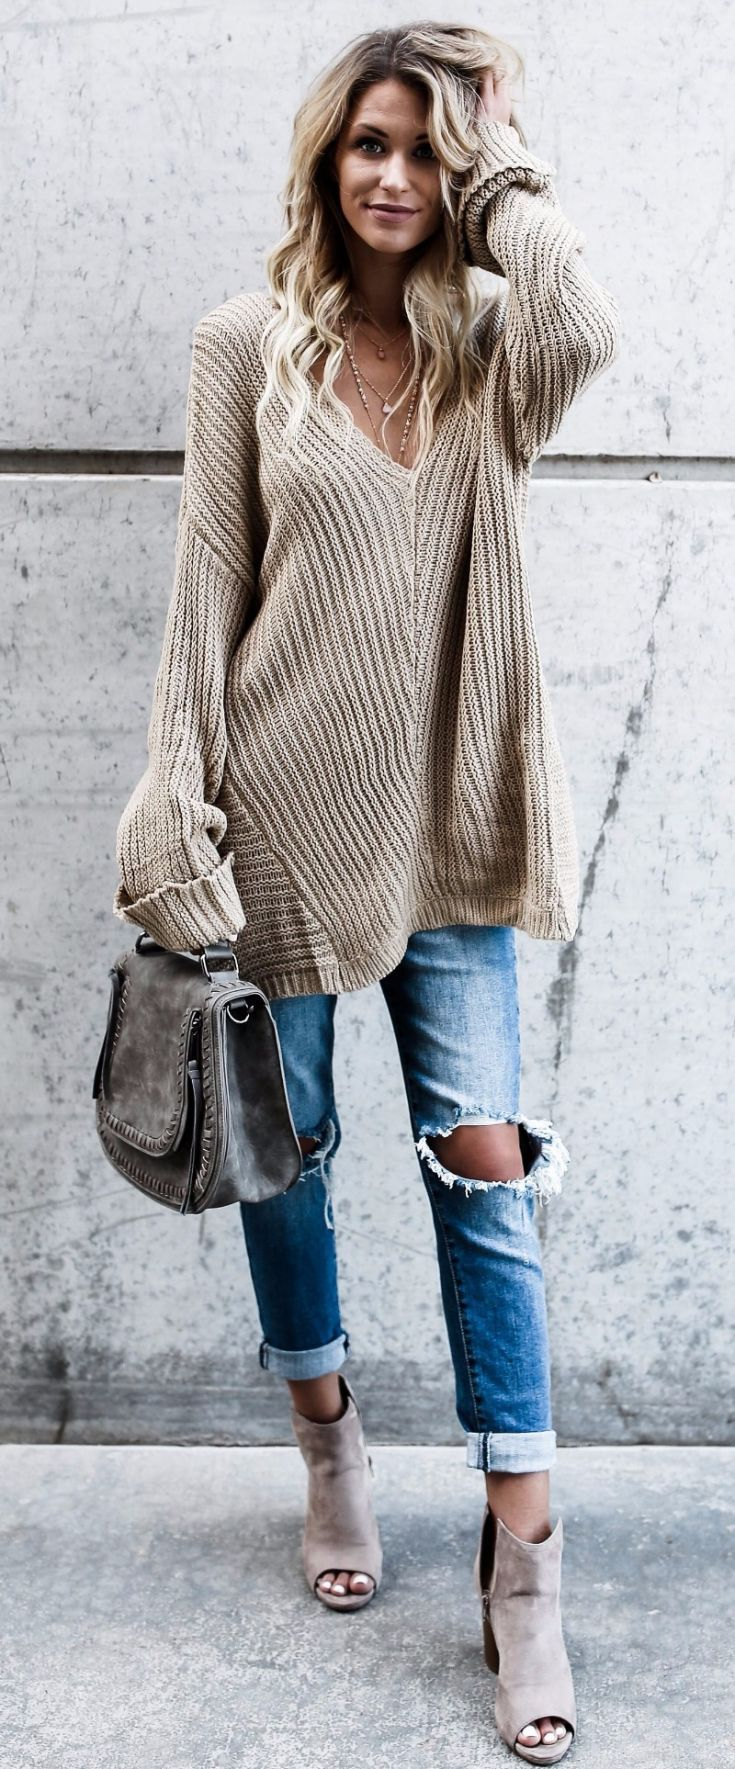 An oversized sweater that will make everyone asks where did you get it